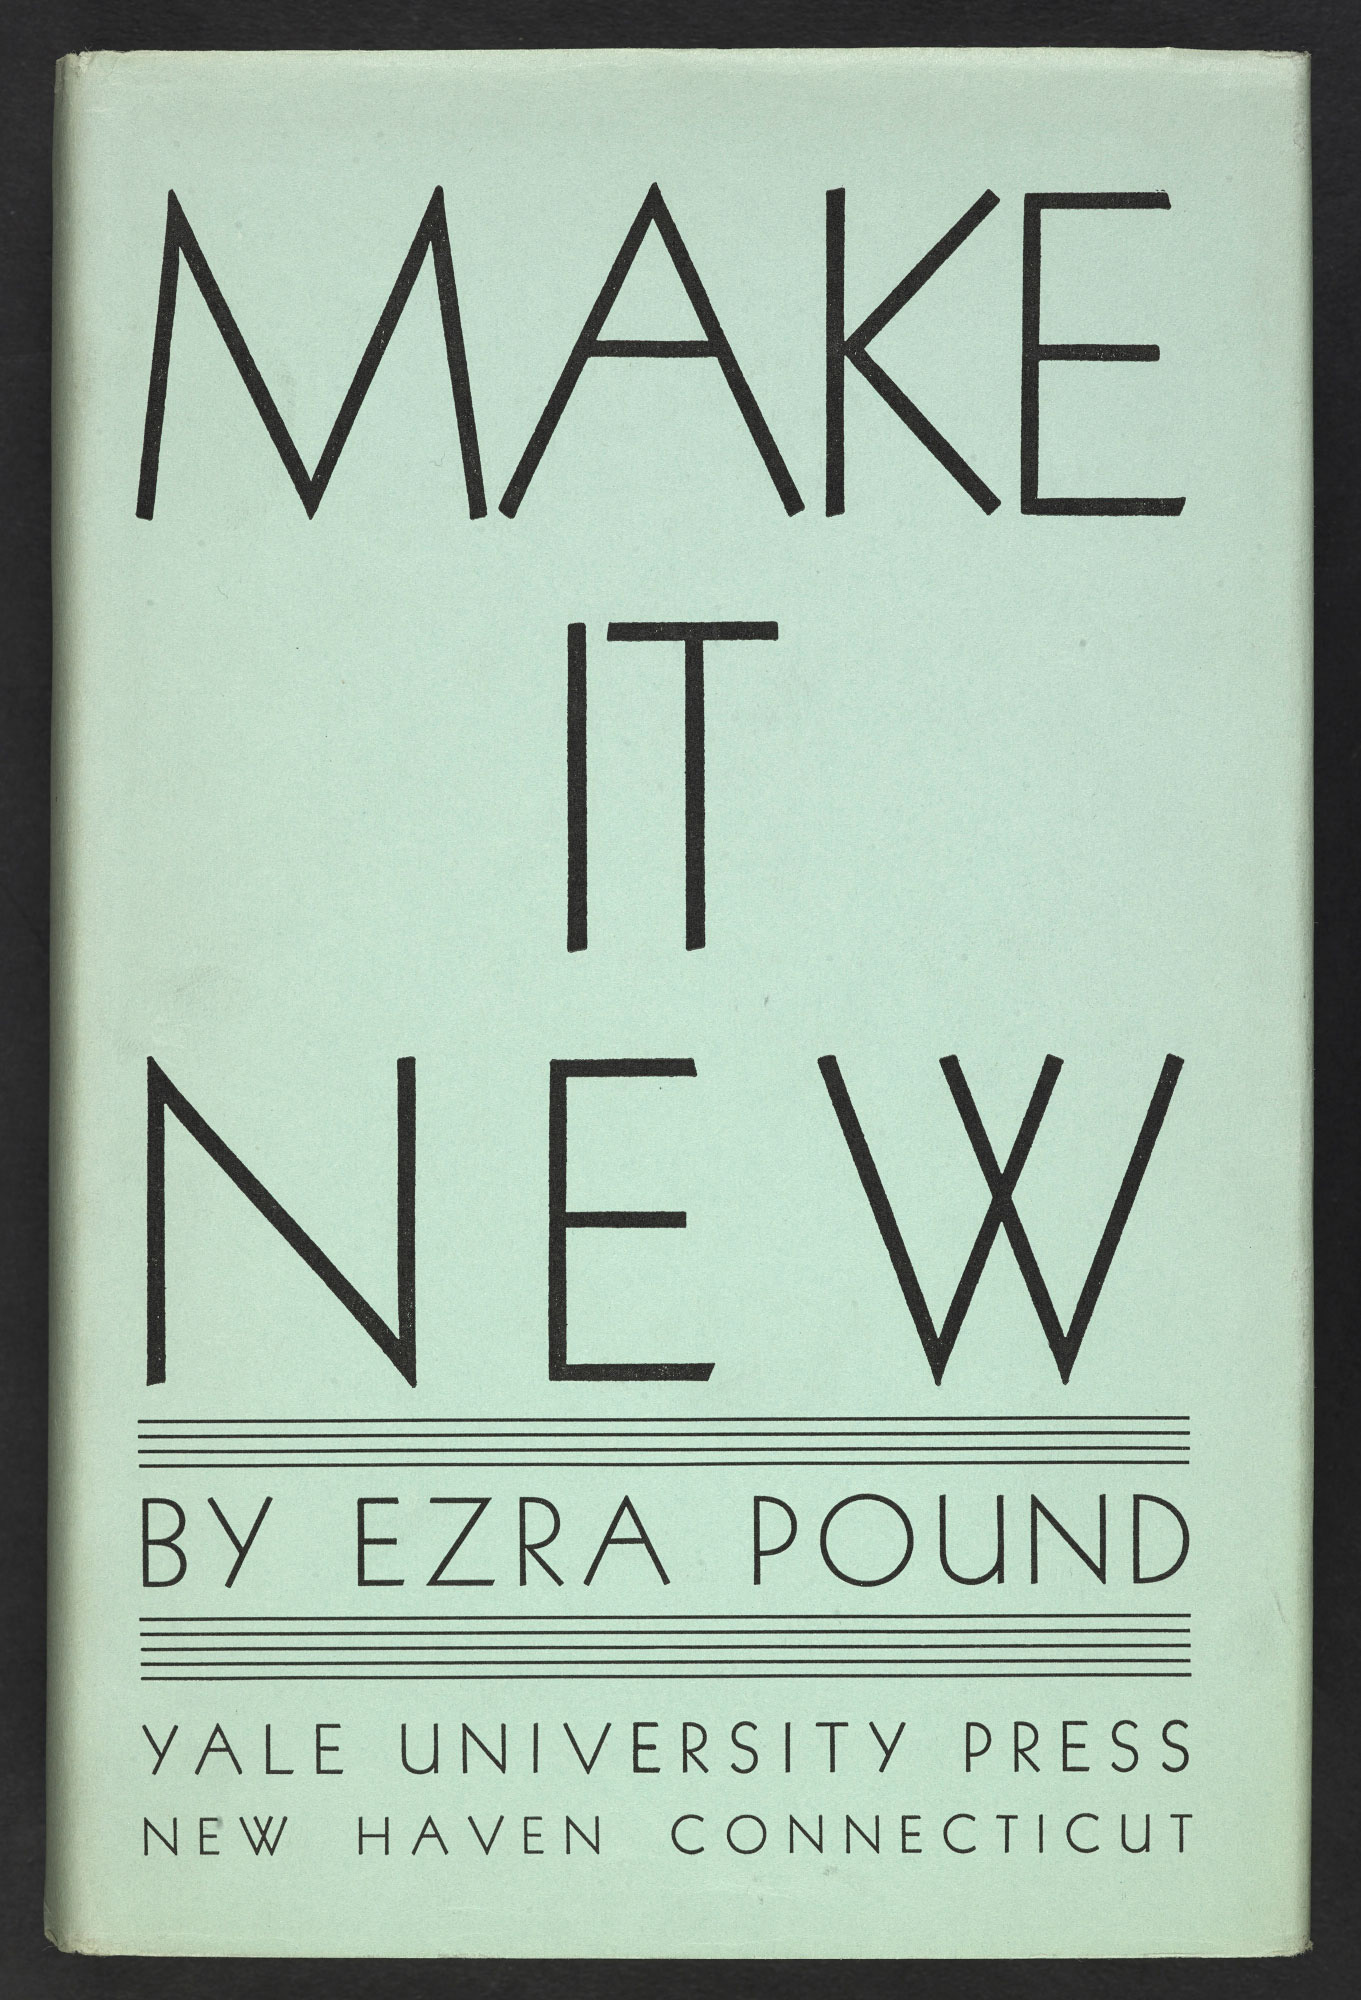 Make It New by Ezra Pound